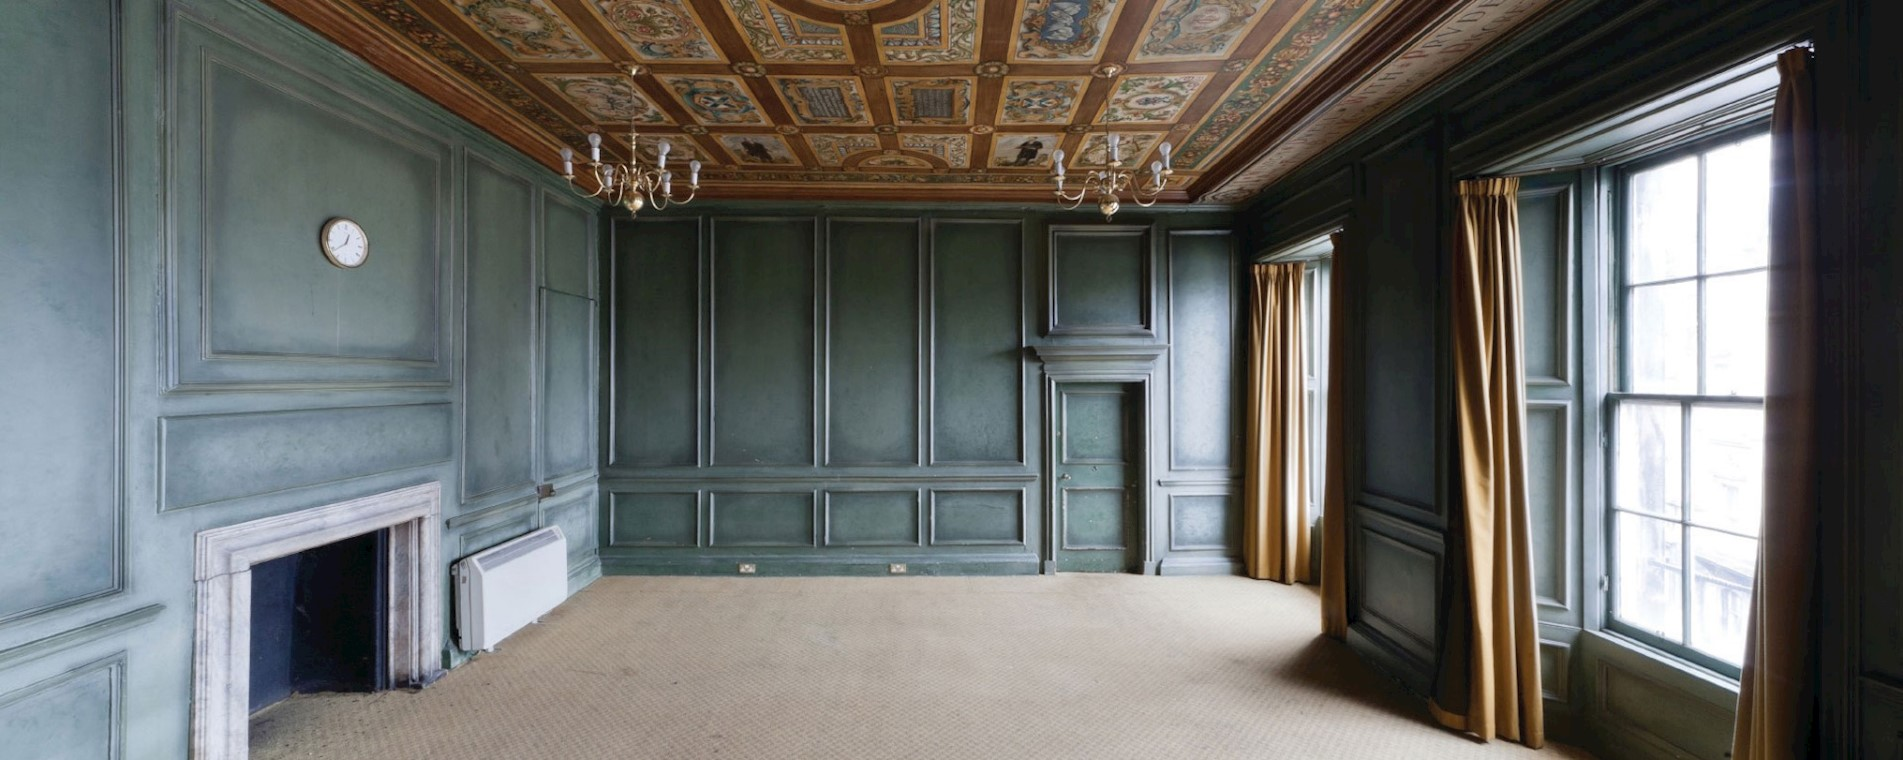 The Geddes Room Pre-restoration